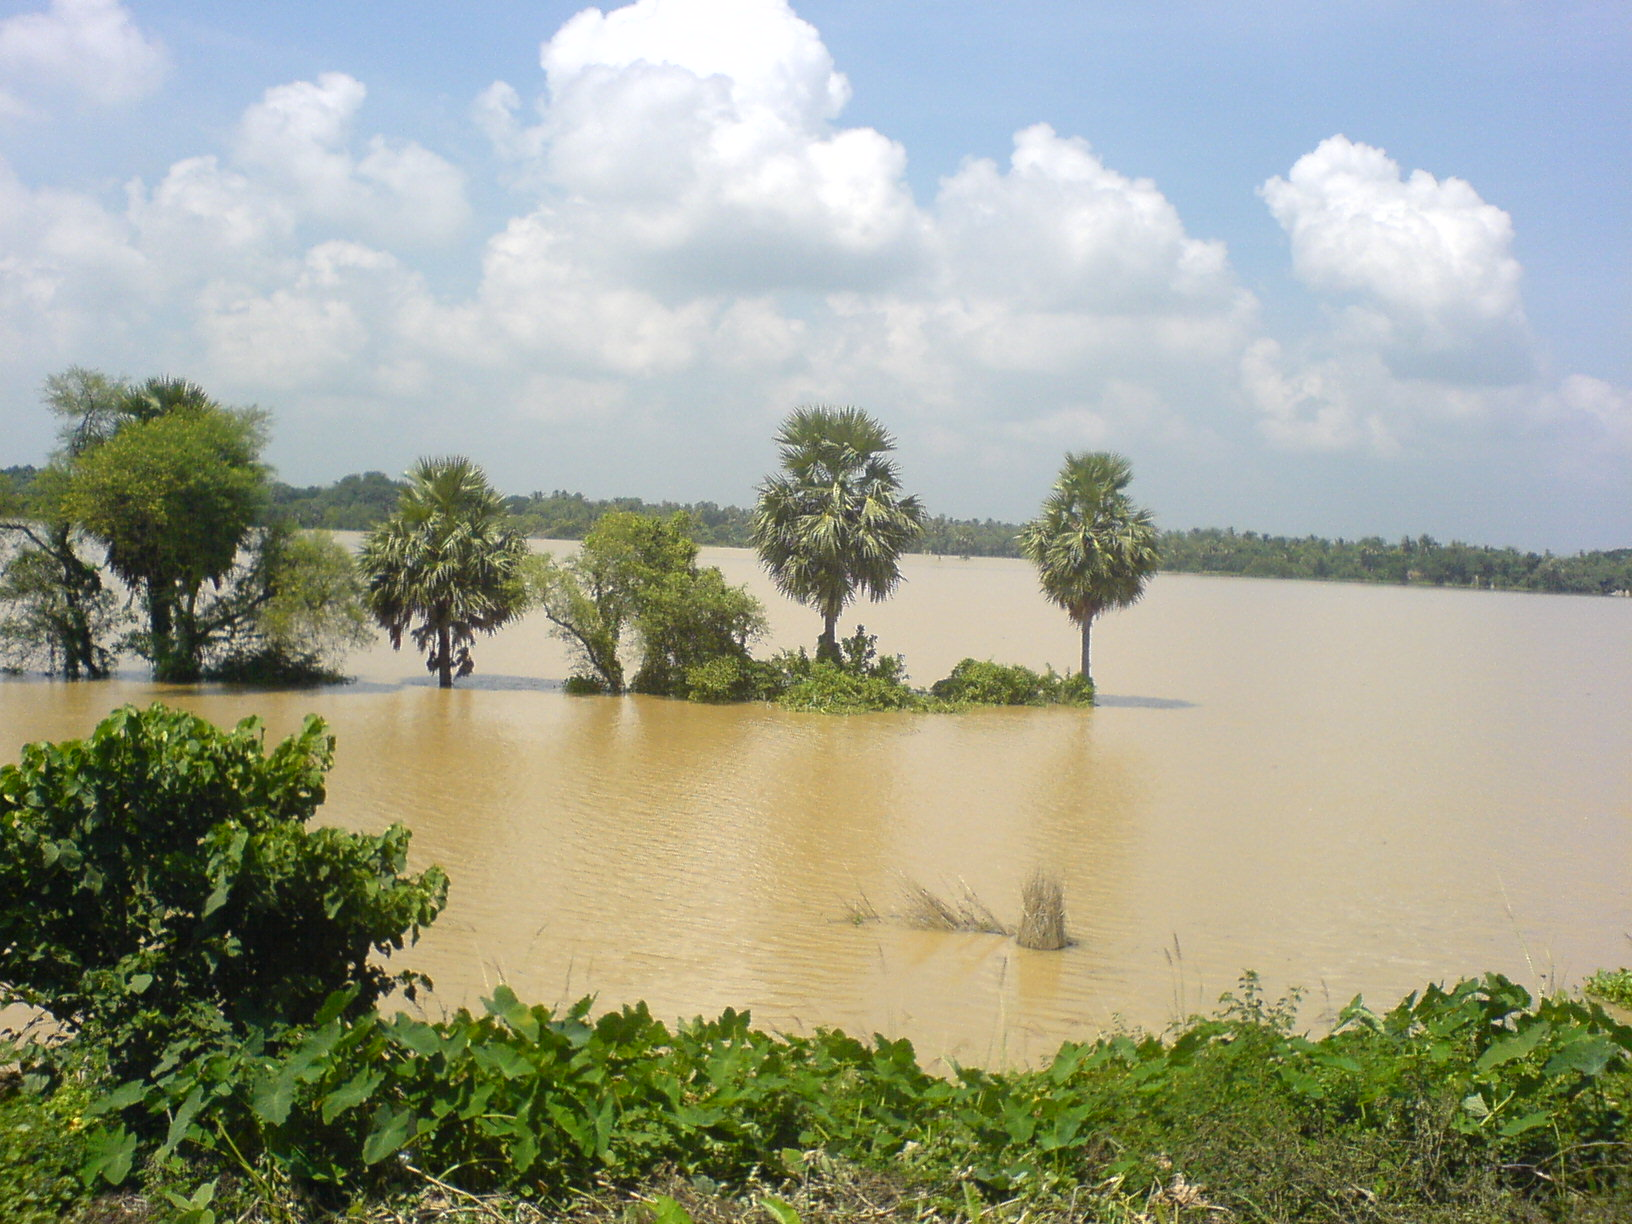 rainy season in bangladesh essay Related post of essay on rainy season in bangladesh tones in essays length of a 1500 word essay this entry was posted in essay on rainy season in bangladesh on may.